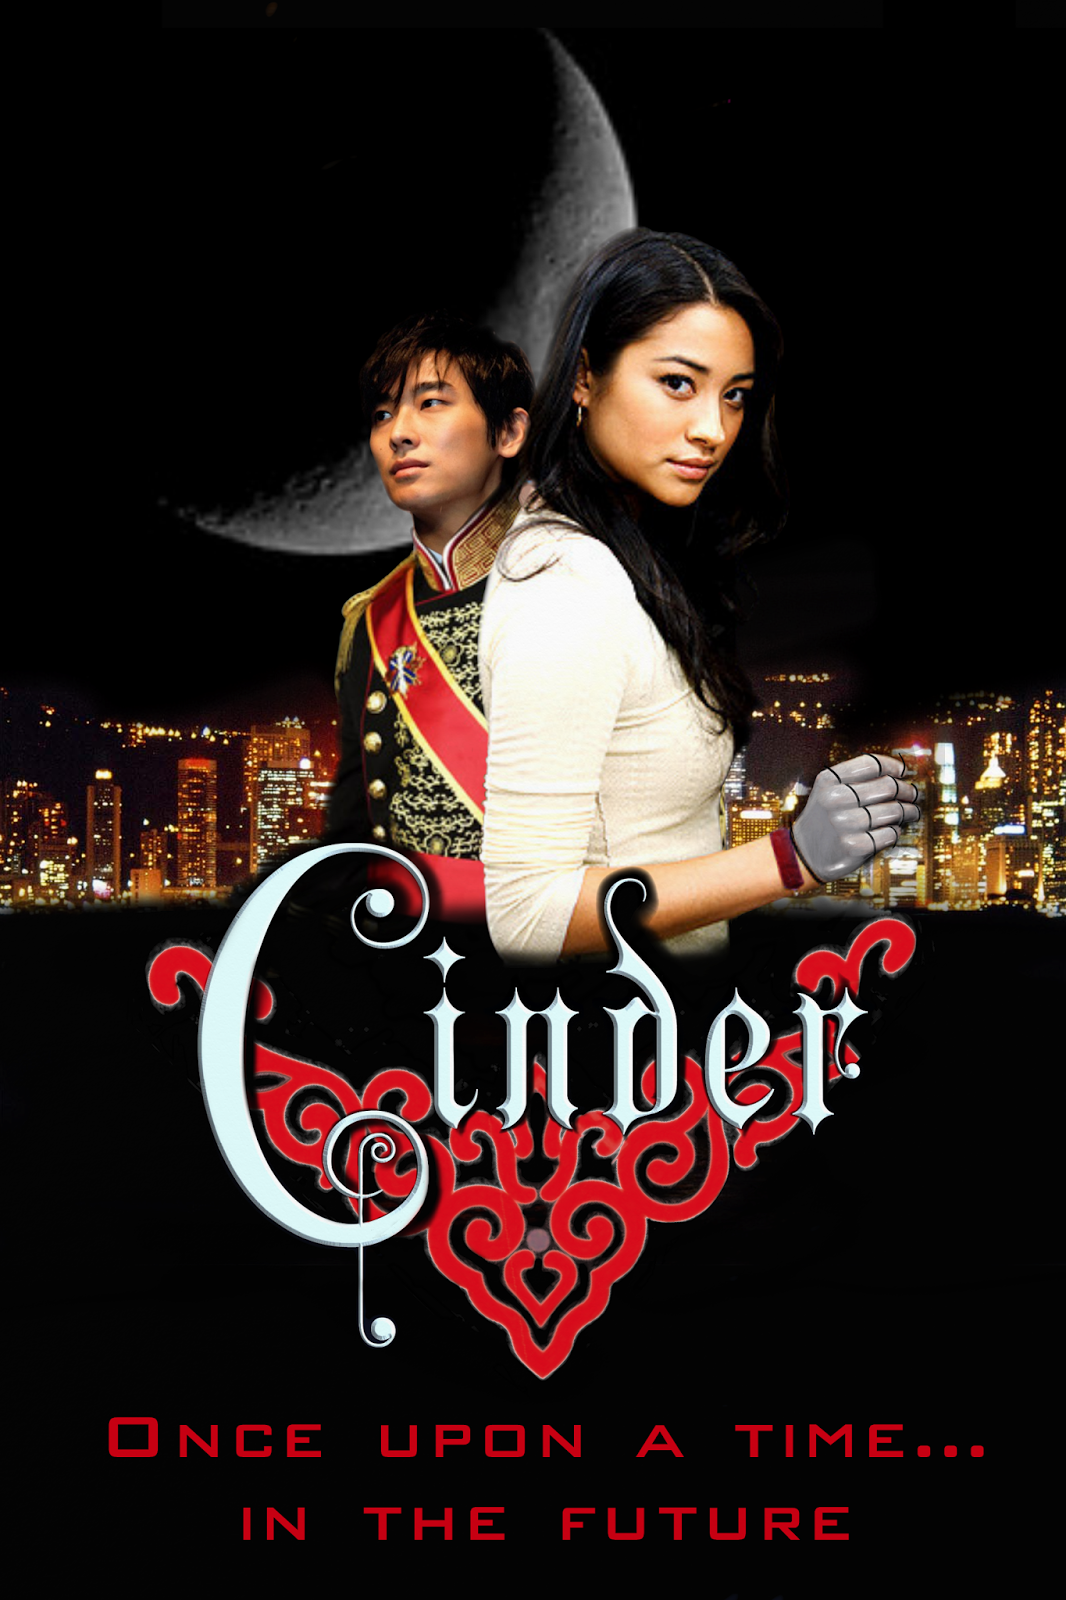 Cinder Libro Cinder By Marissa Meyer Ronyell A K A Rabbitearsblog